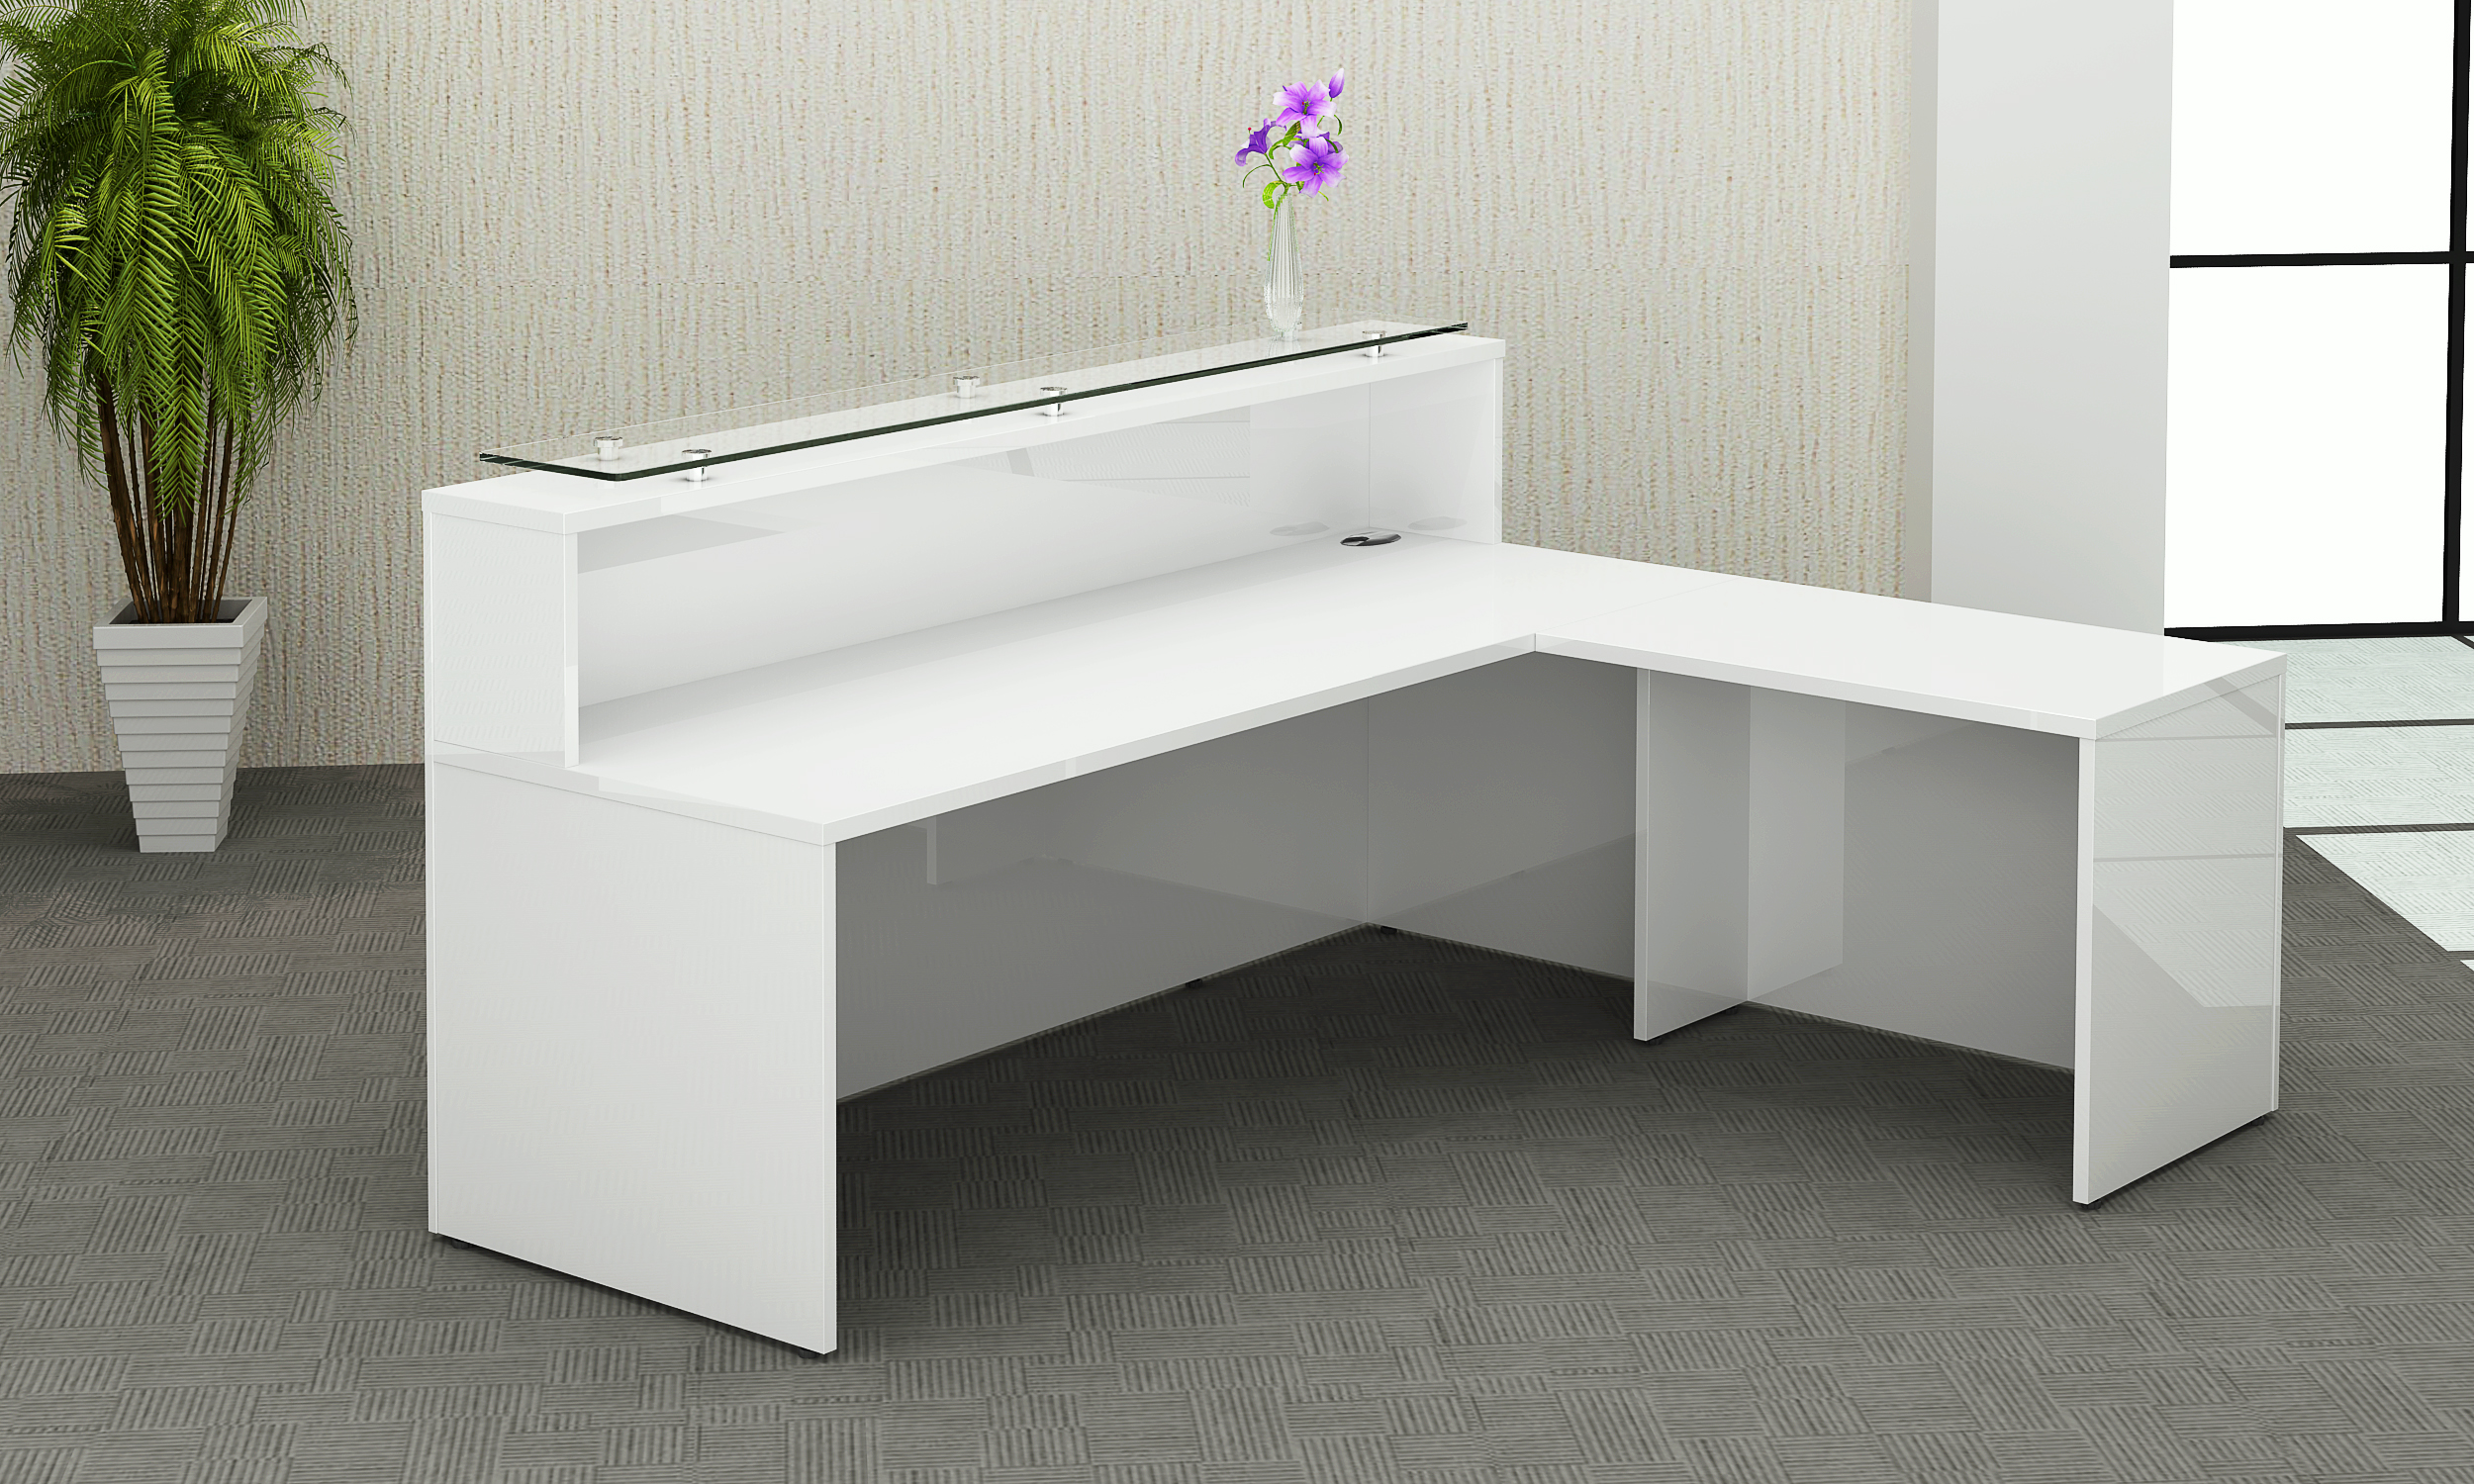 White High Gloss Reception Counter Office Furniture Solutions 4u